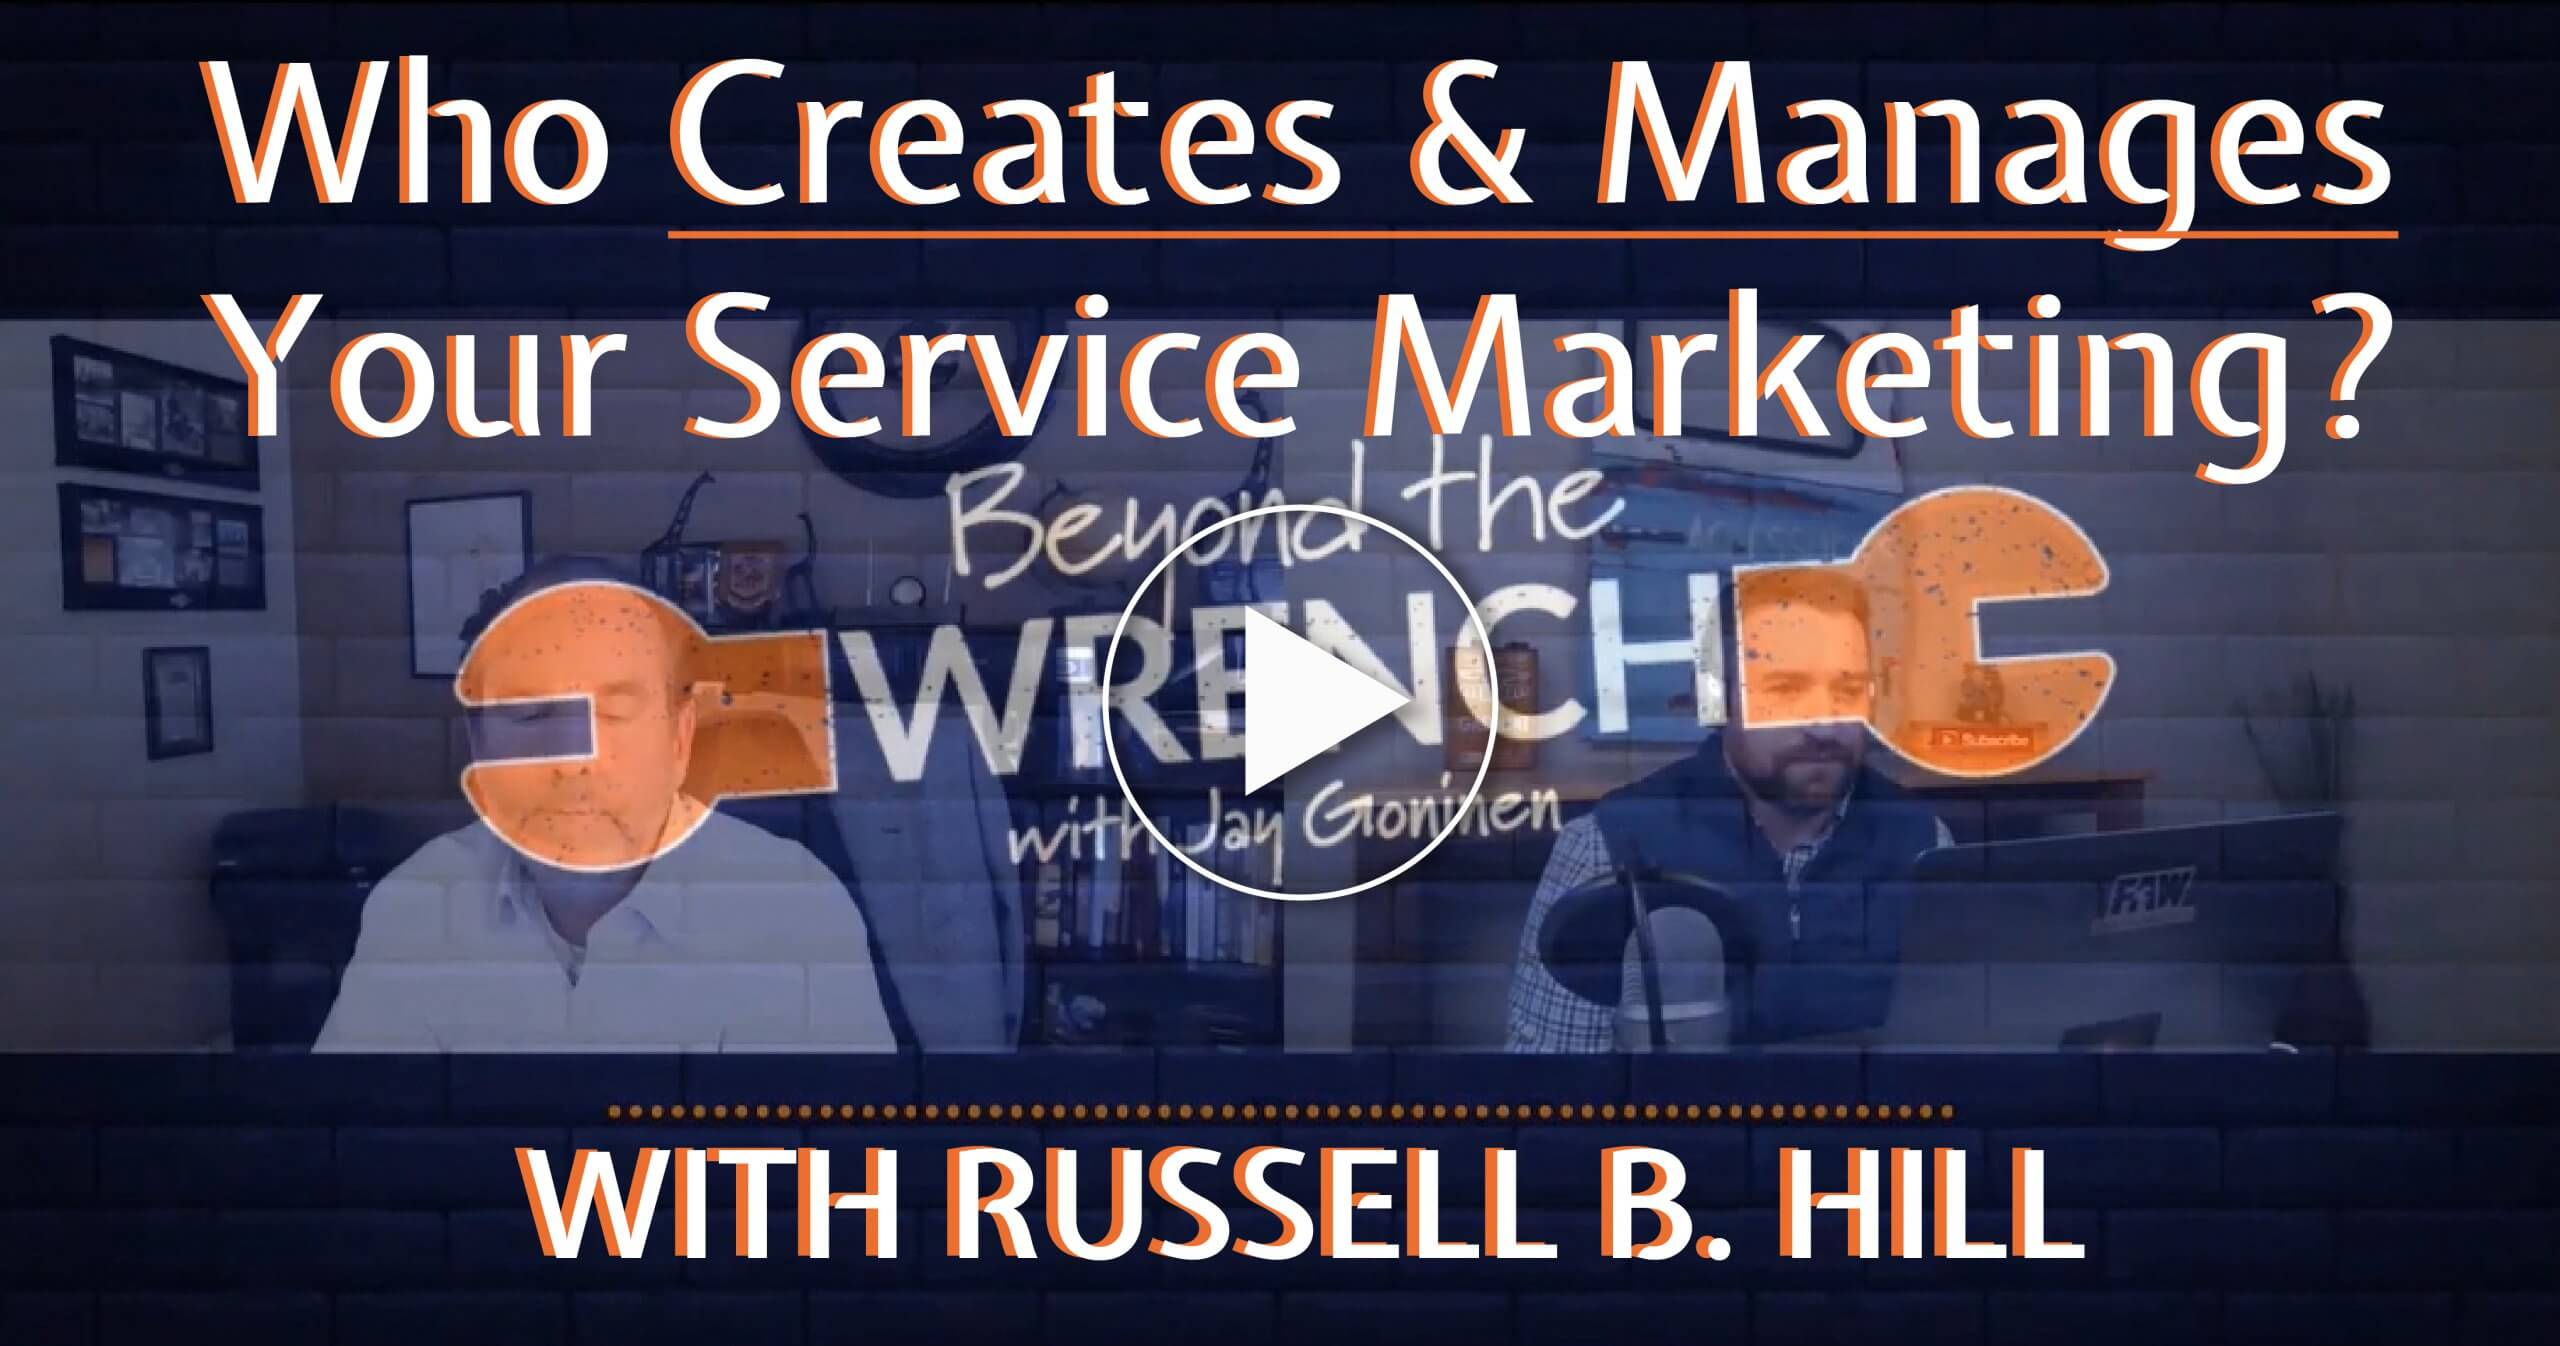 Who creates and manages your service marketing